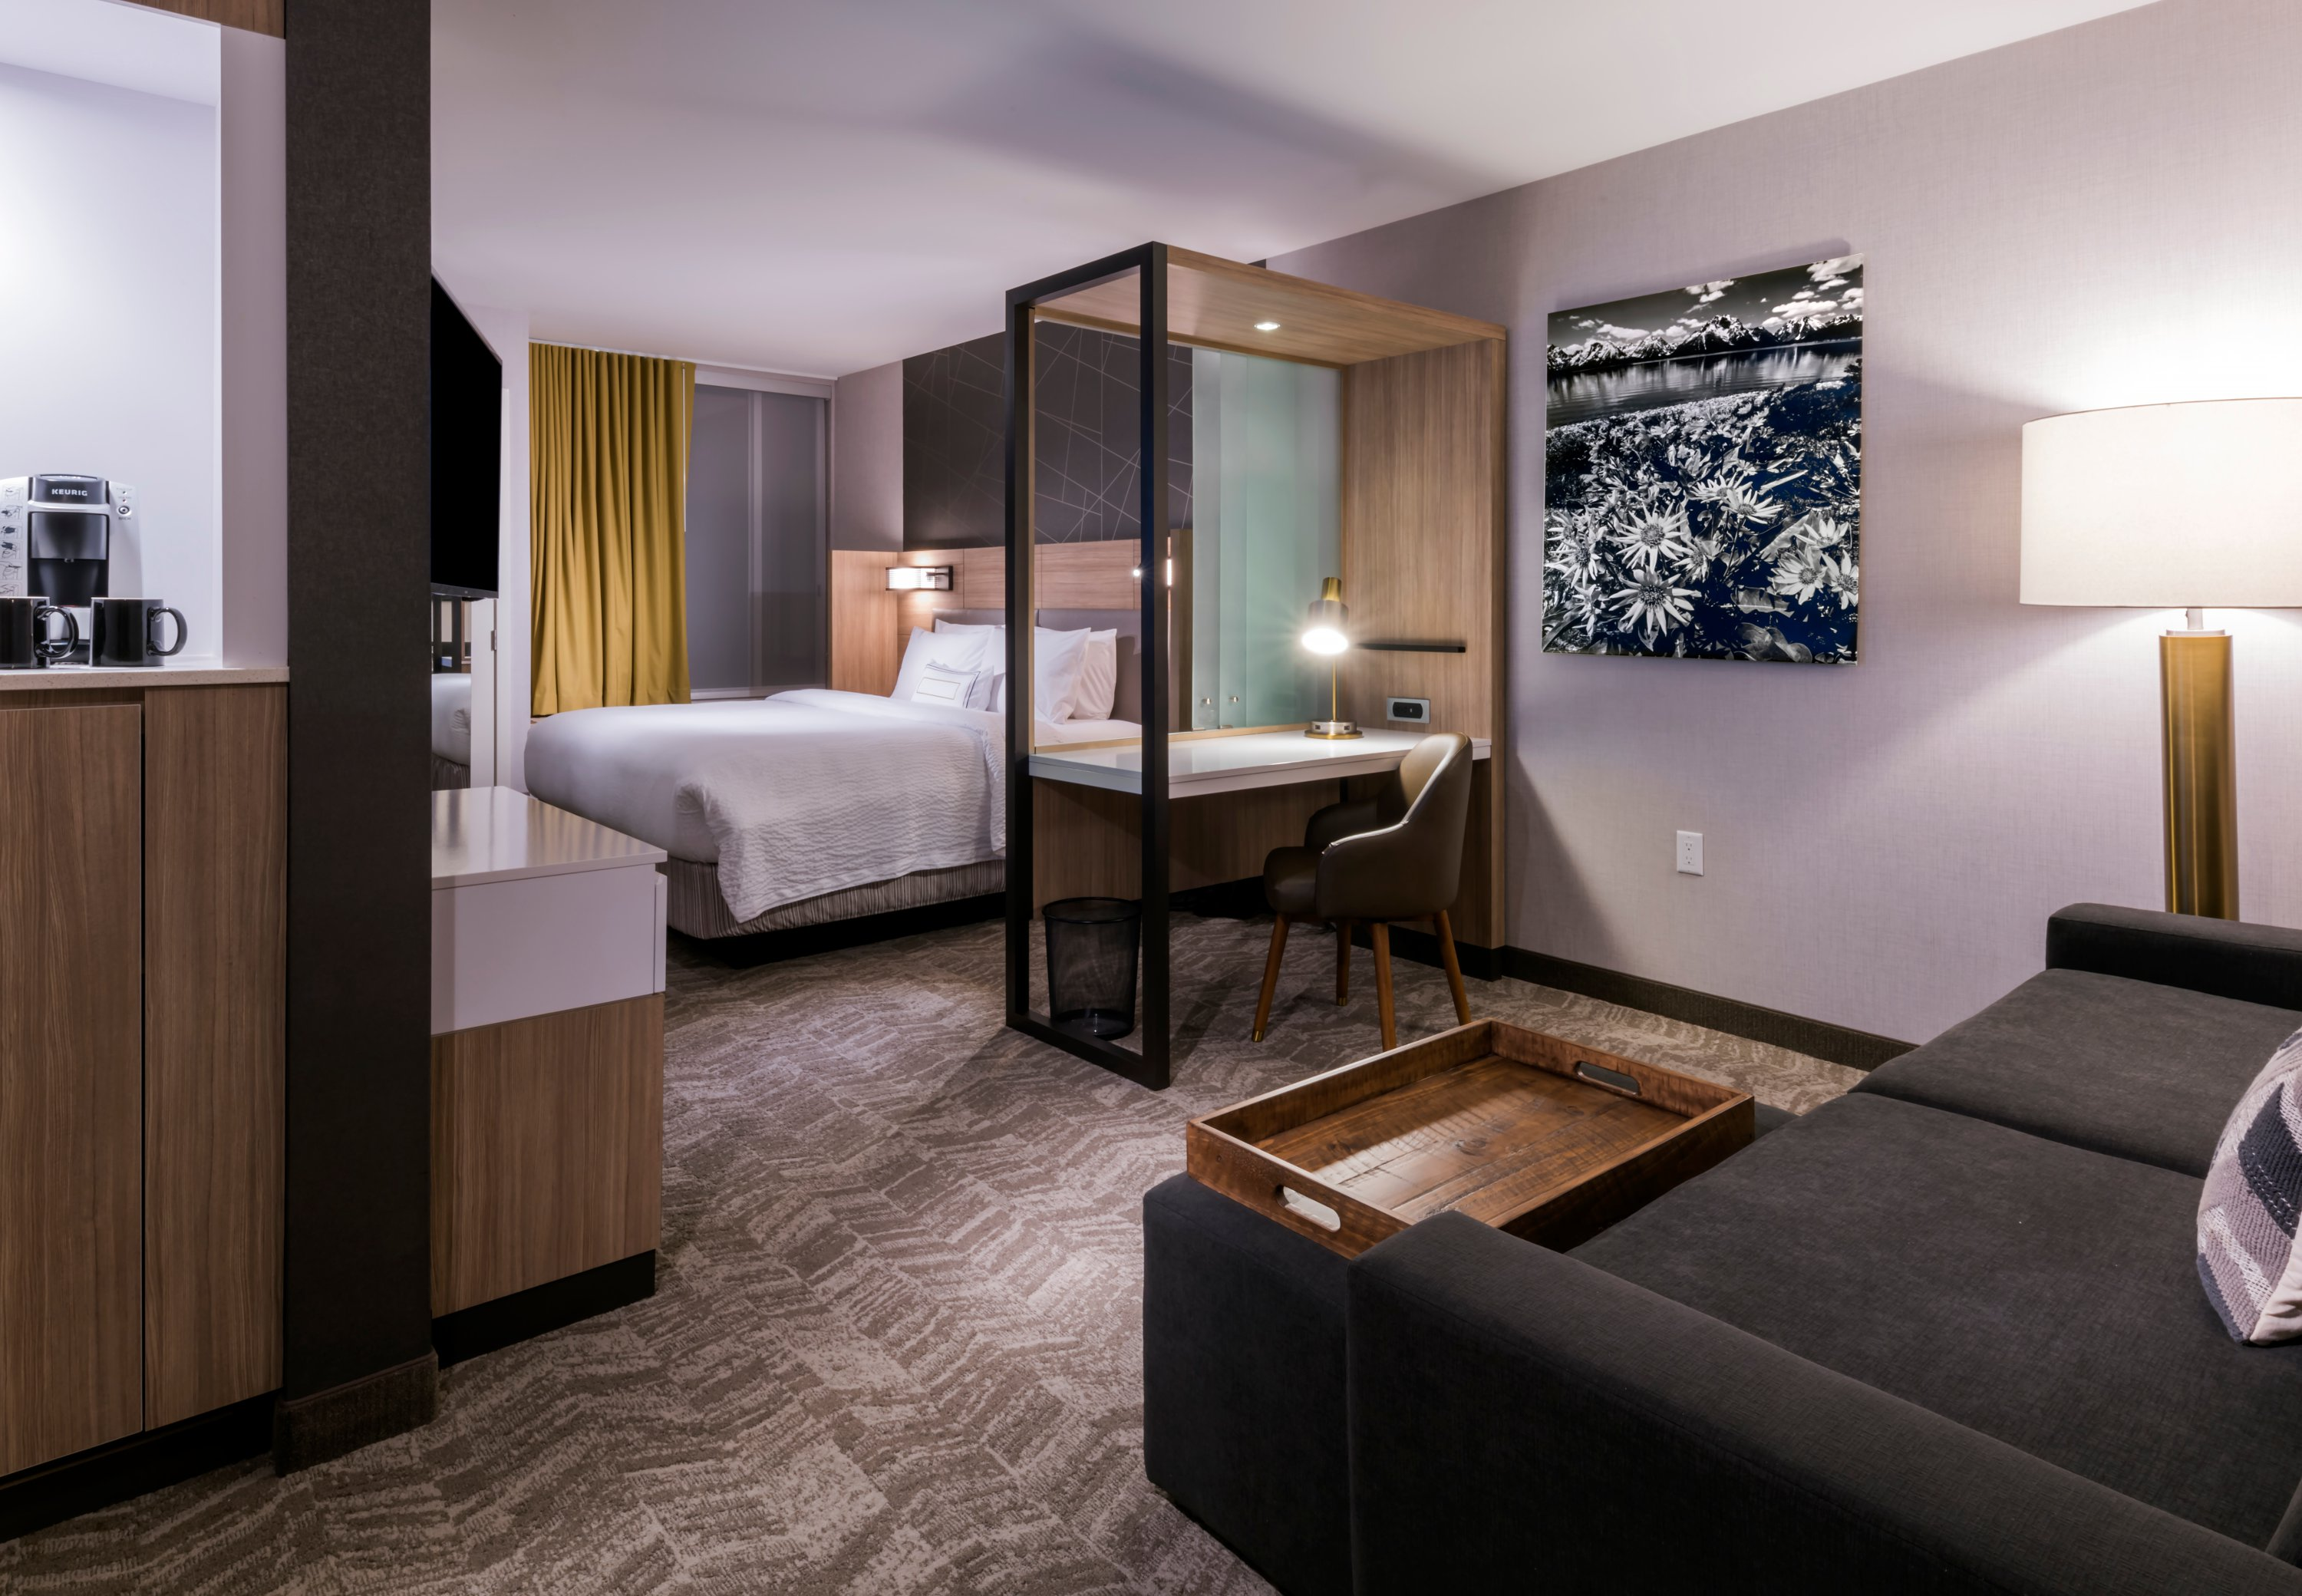 SpringHill Suites by Marriott Jackson Hole image 5